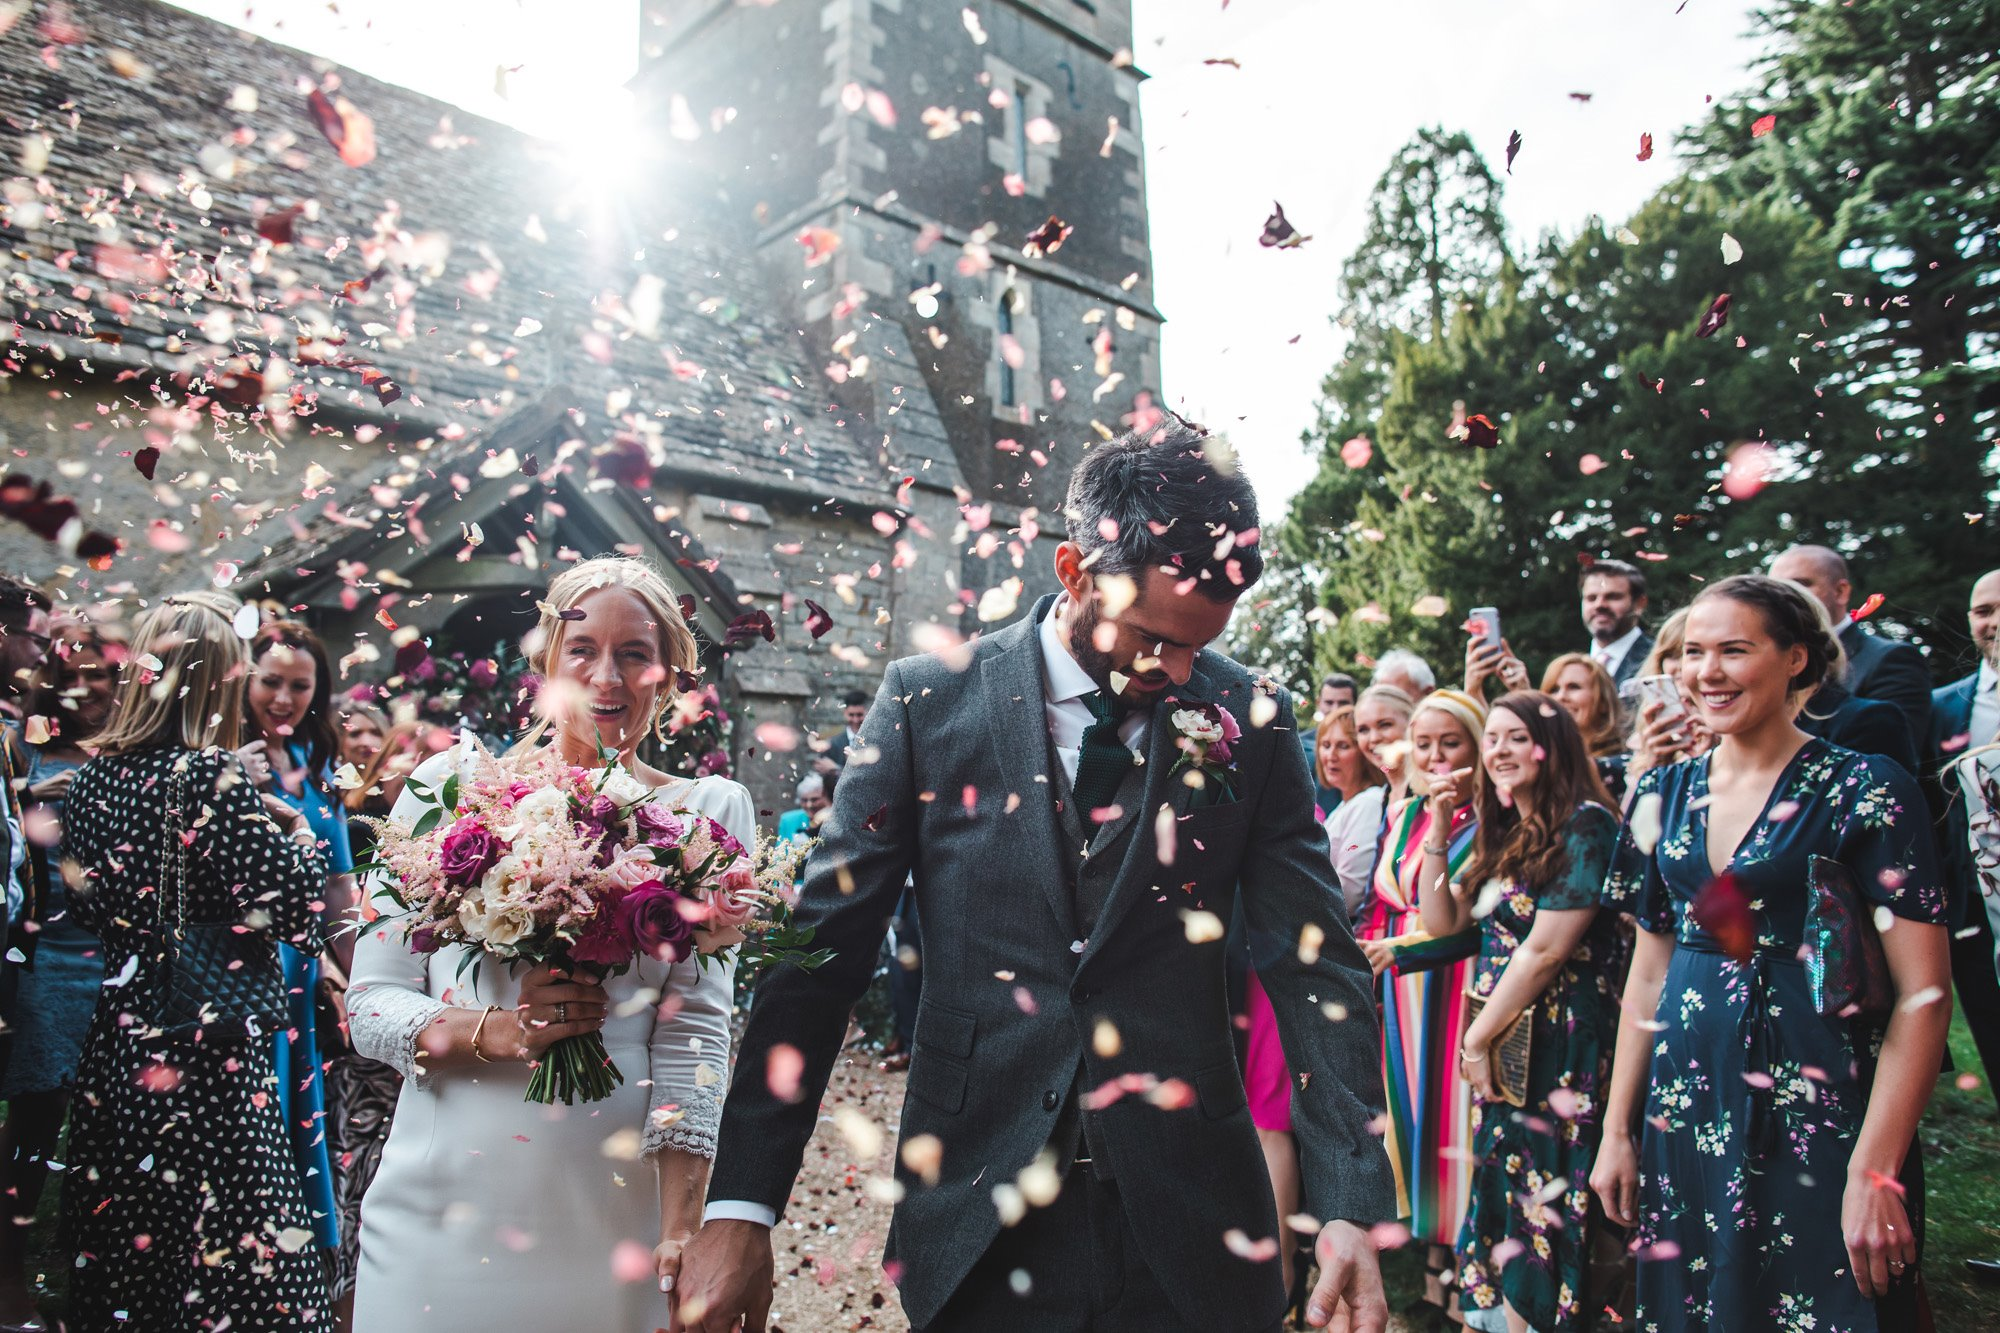 Explosion of rose petal confetti as happily newlywed couple leave Elmore church in Gloucestershire just after their marriage ceremony